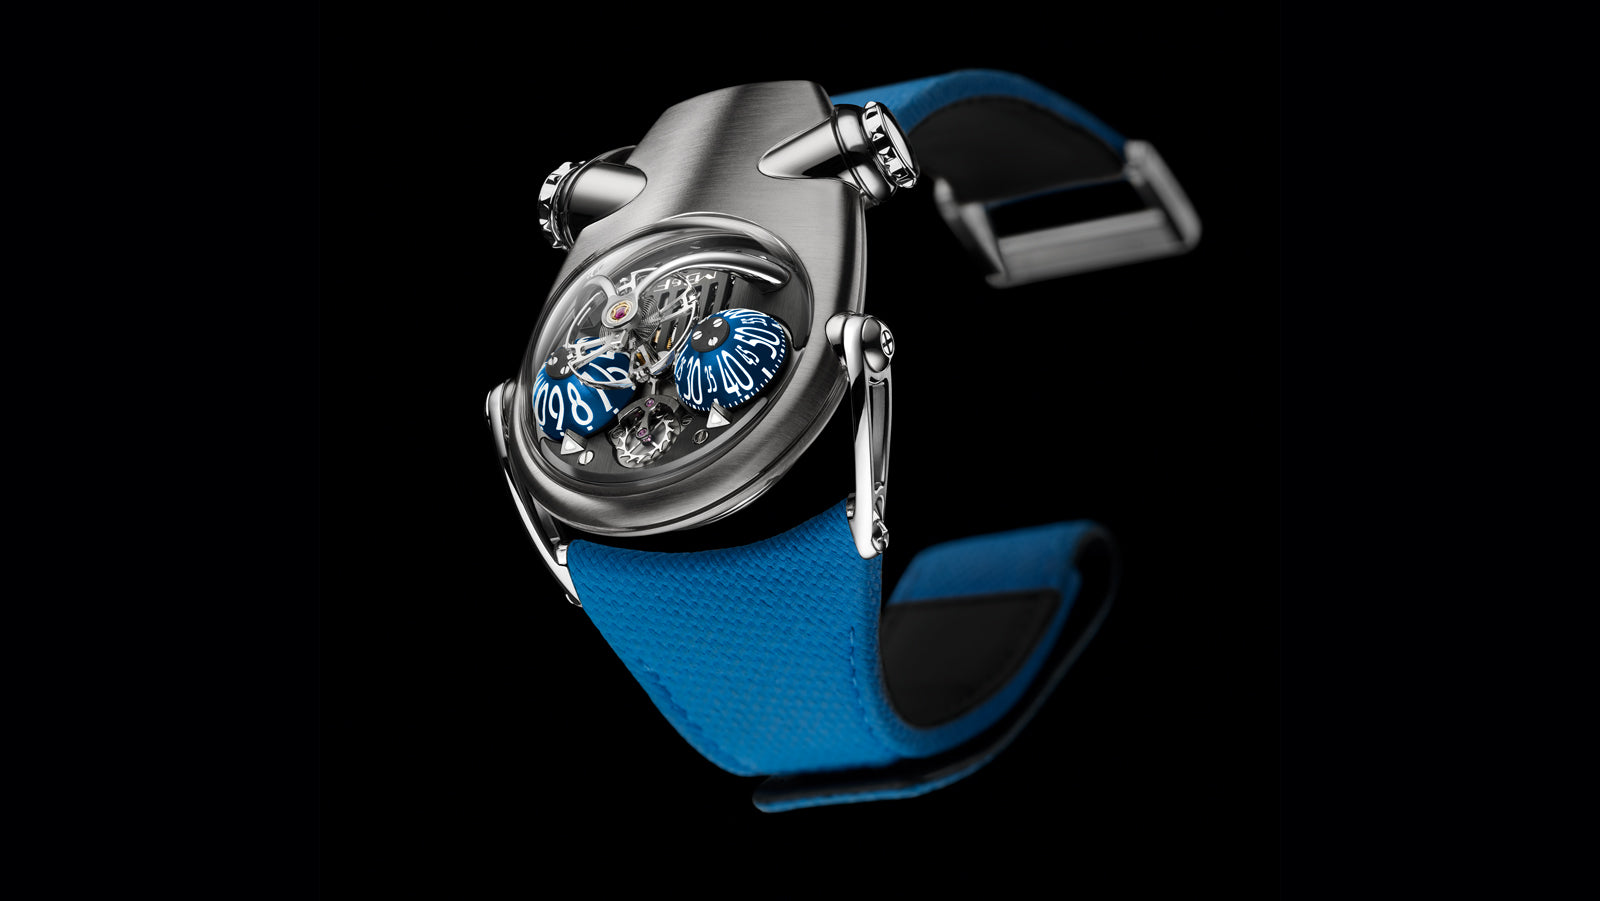 MB&F HM10 watch soldier shot Stephen Silver